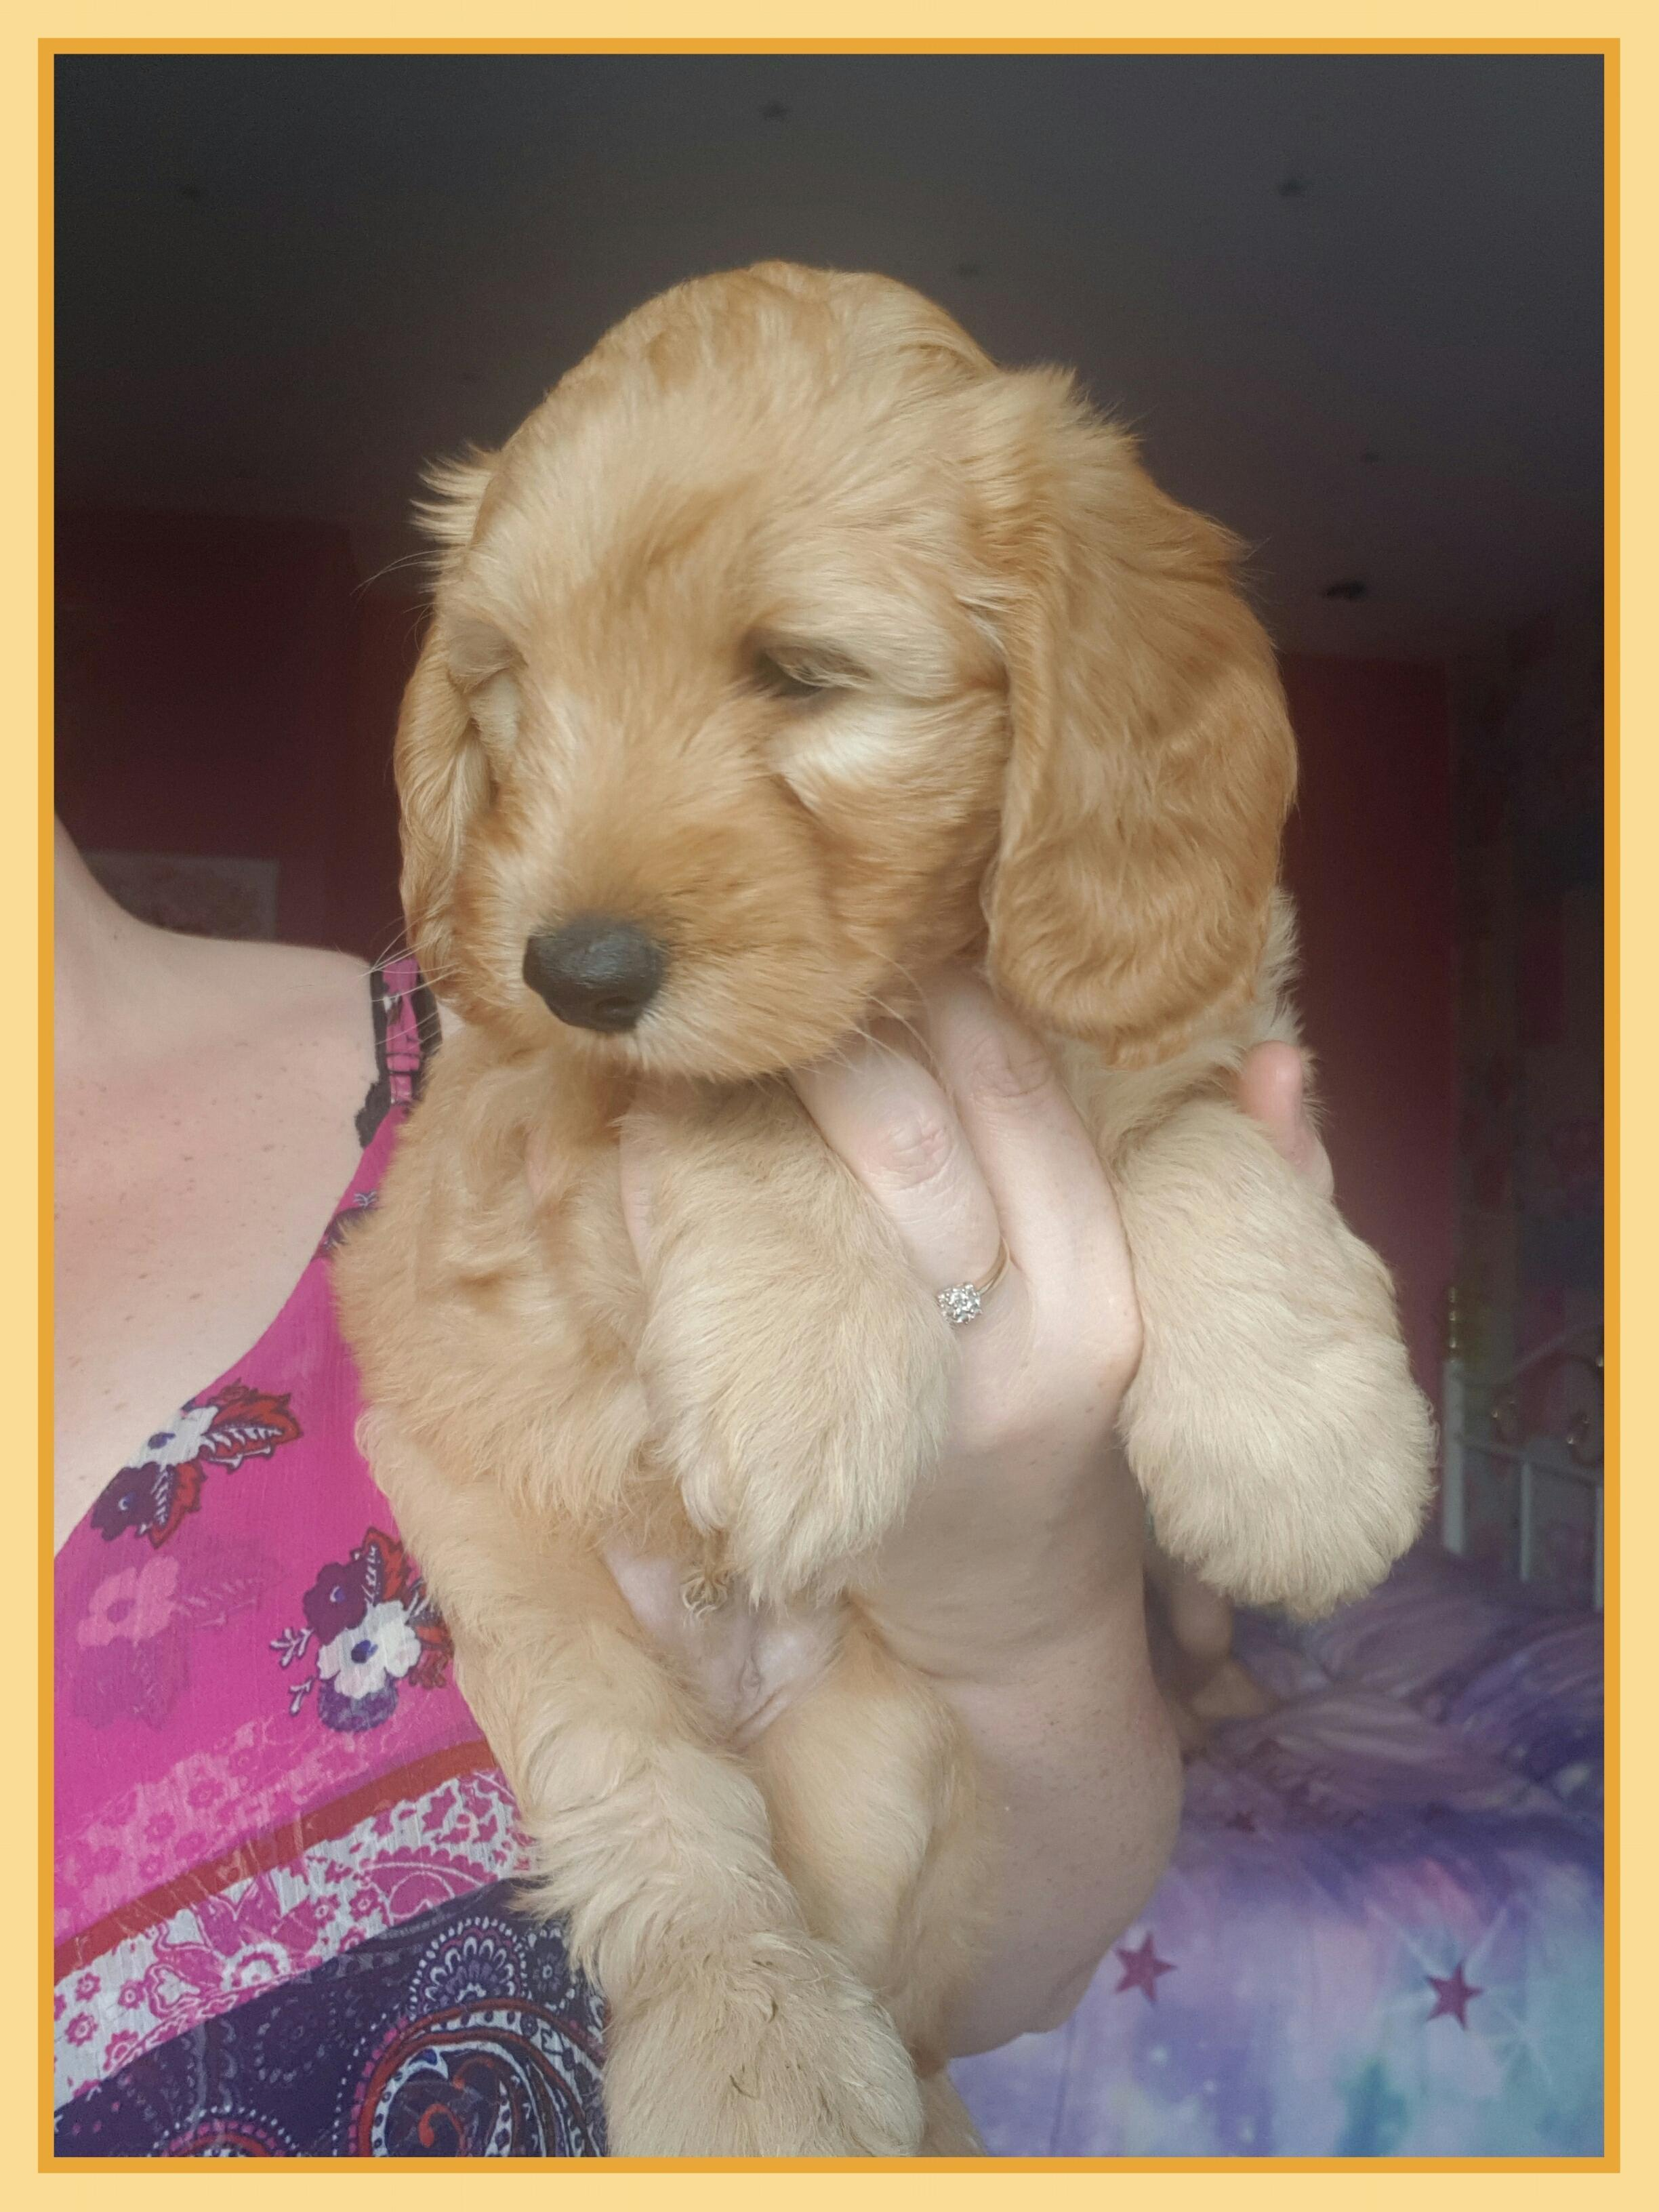 Beautiful f1b cockapoo's in Stockport - Expired | Friday Ad